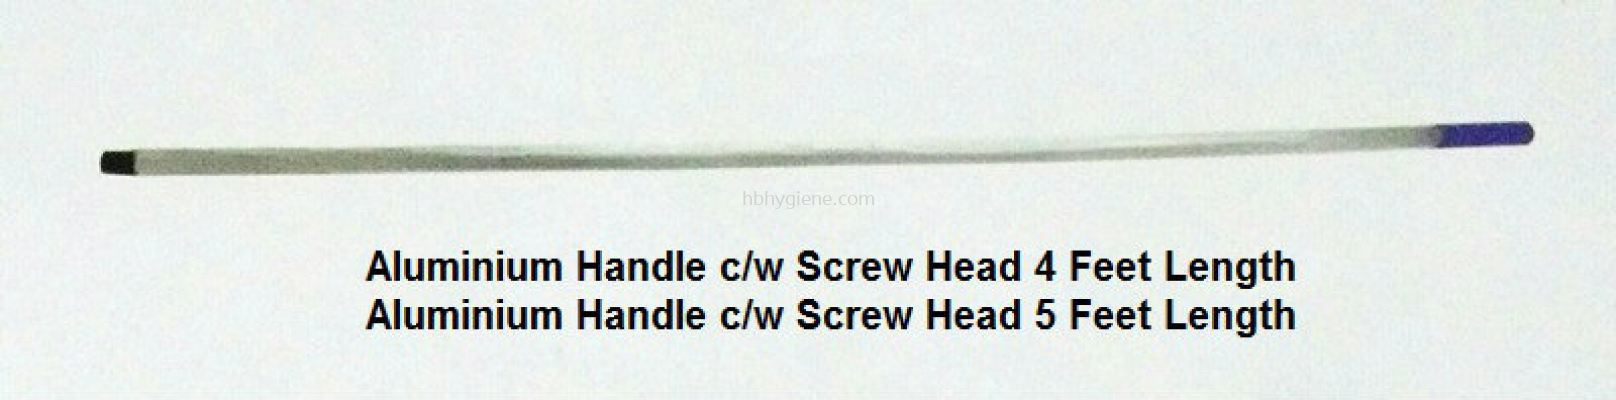 Aluminium Handle c/w Screw Head